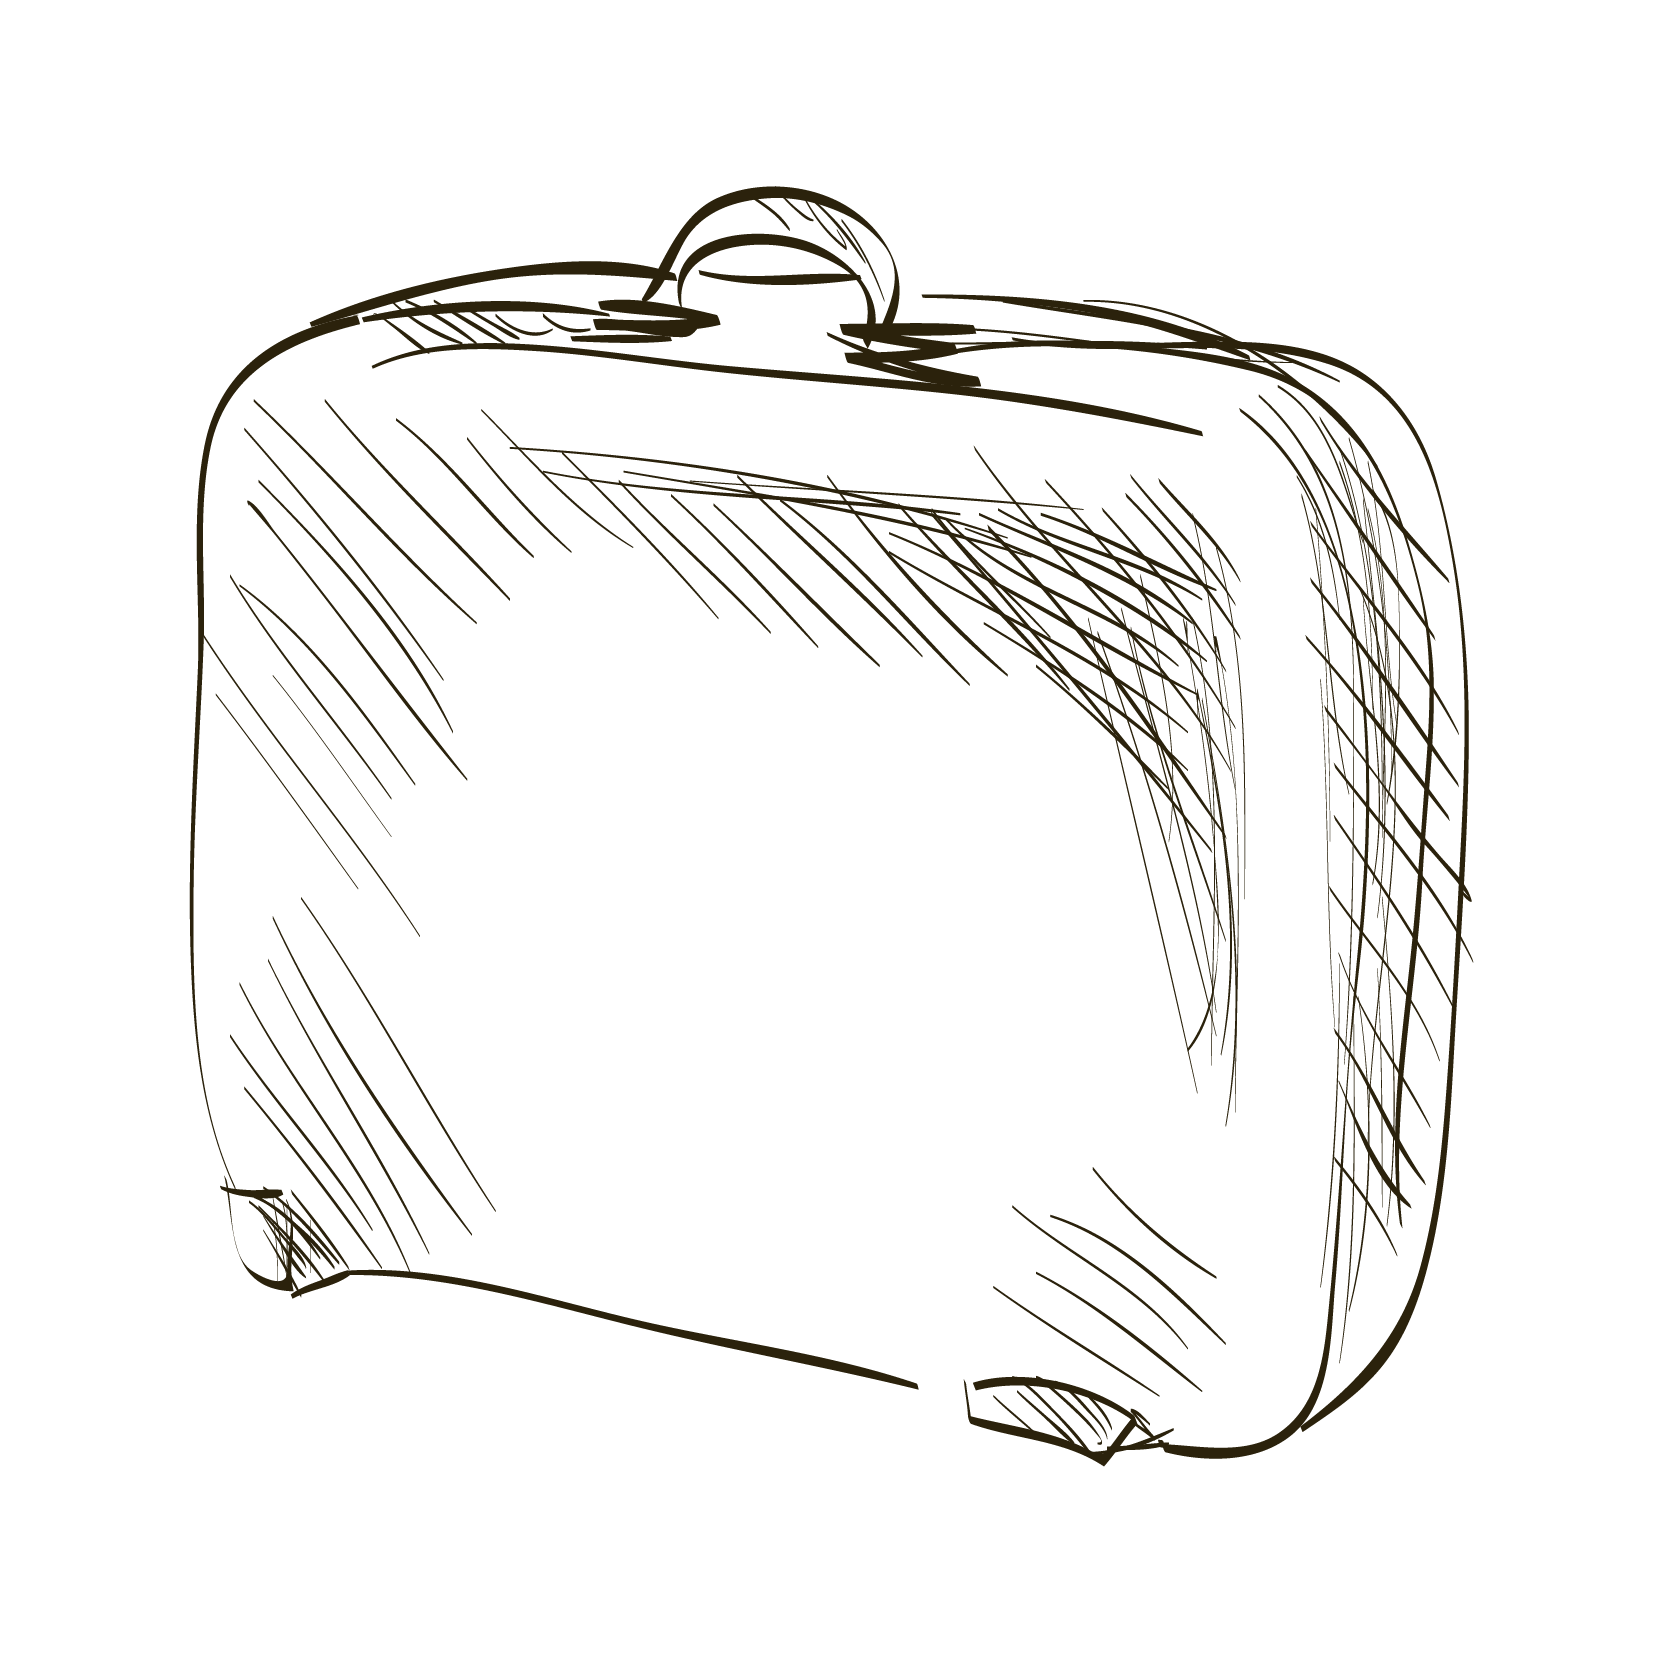 clip art free stock Drawing photography simple. Paper suitcase black luggage